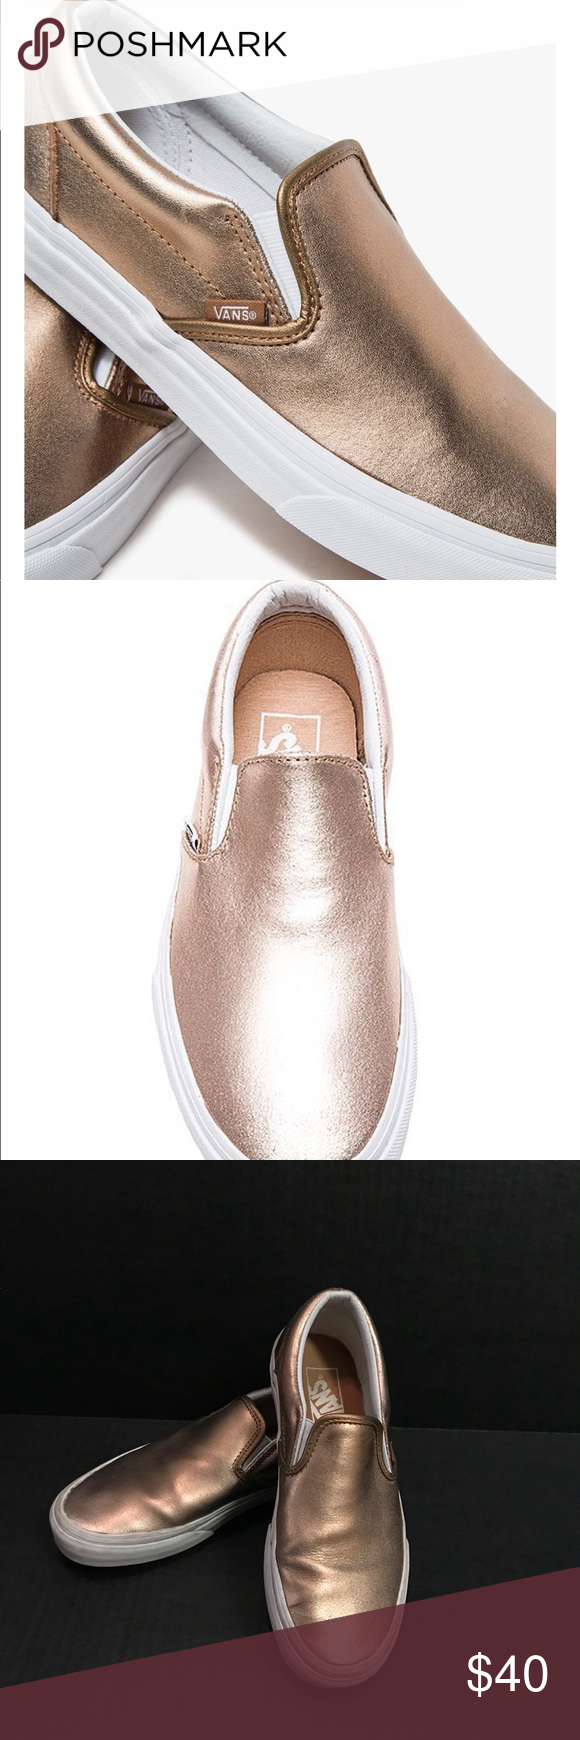 9dbb40b44387 Rose gold vans Beautiful metallic rose gold vans slip on shoe. Barely worn.  I m sad because I bought them one size too small and they re so pretty!!